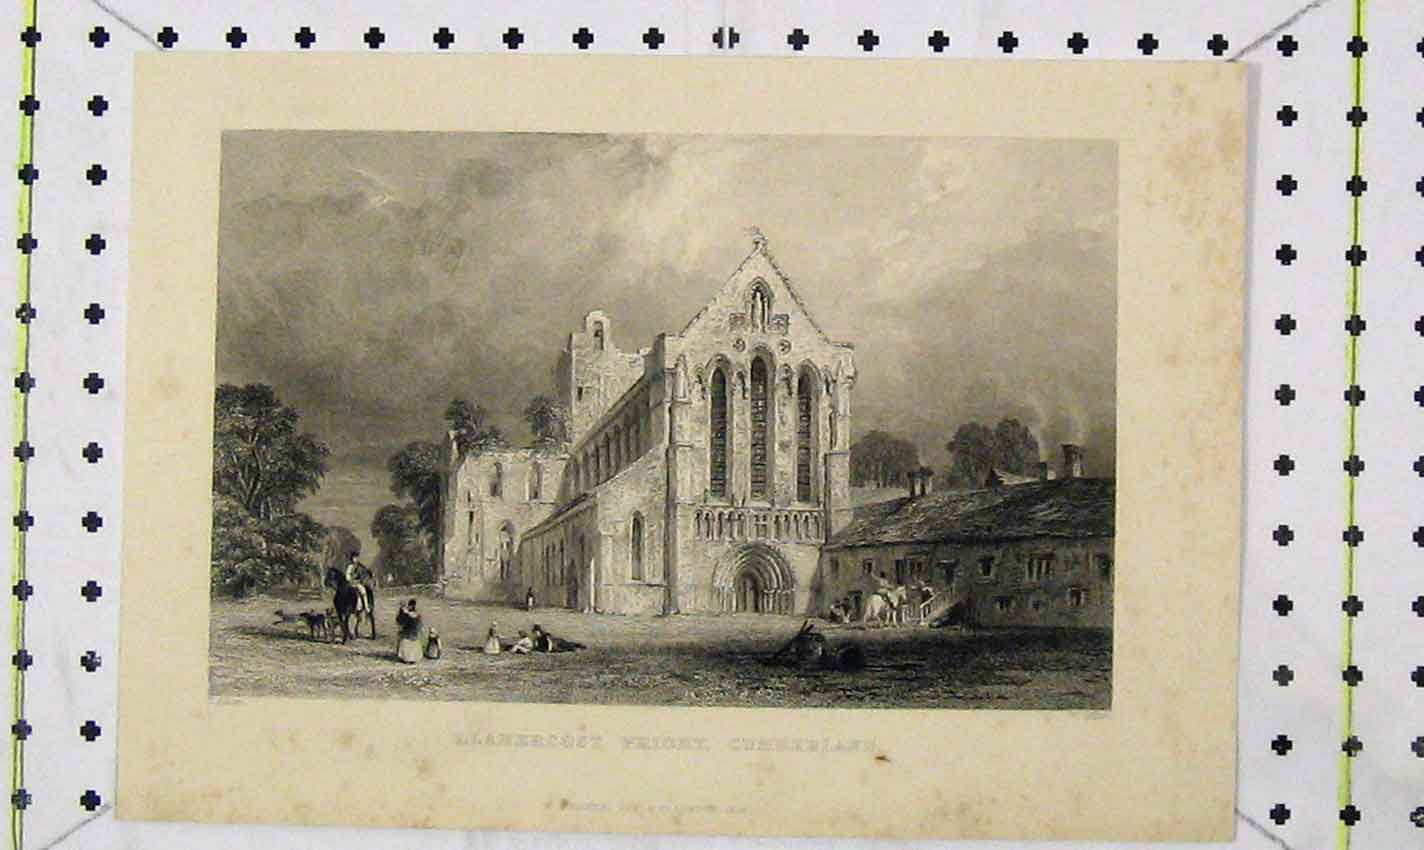 Print 1833 View Llanercost Priory Cumberland Miller 183B226 Old Original